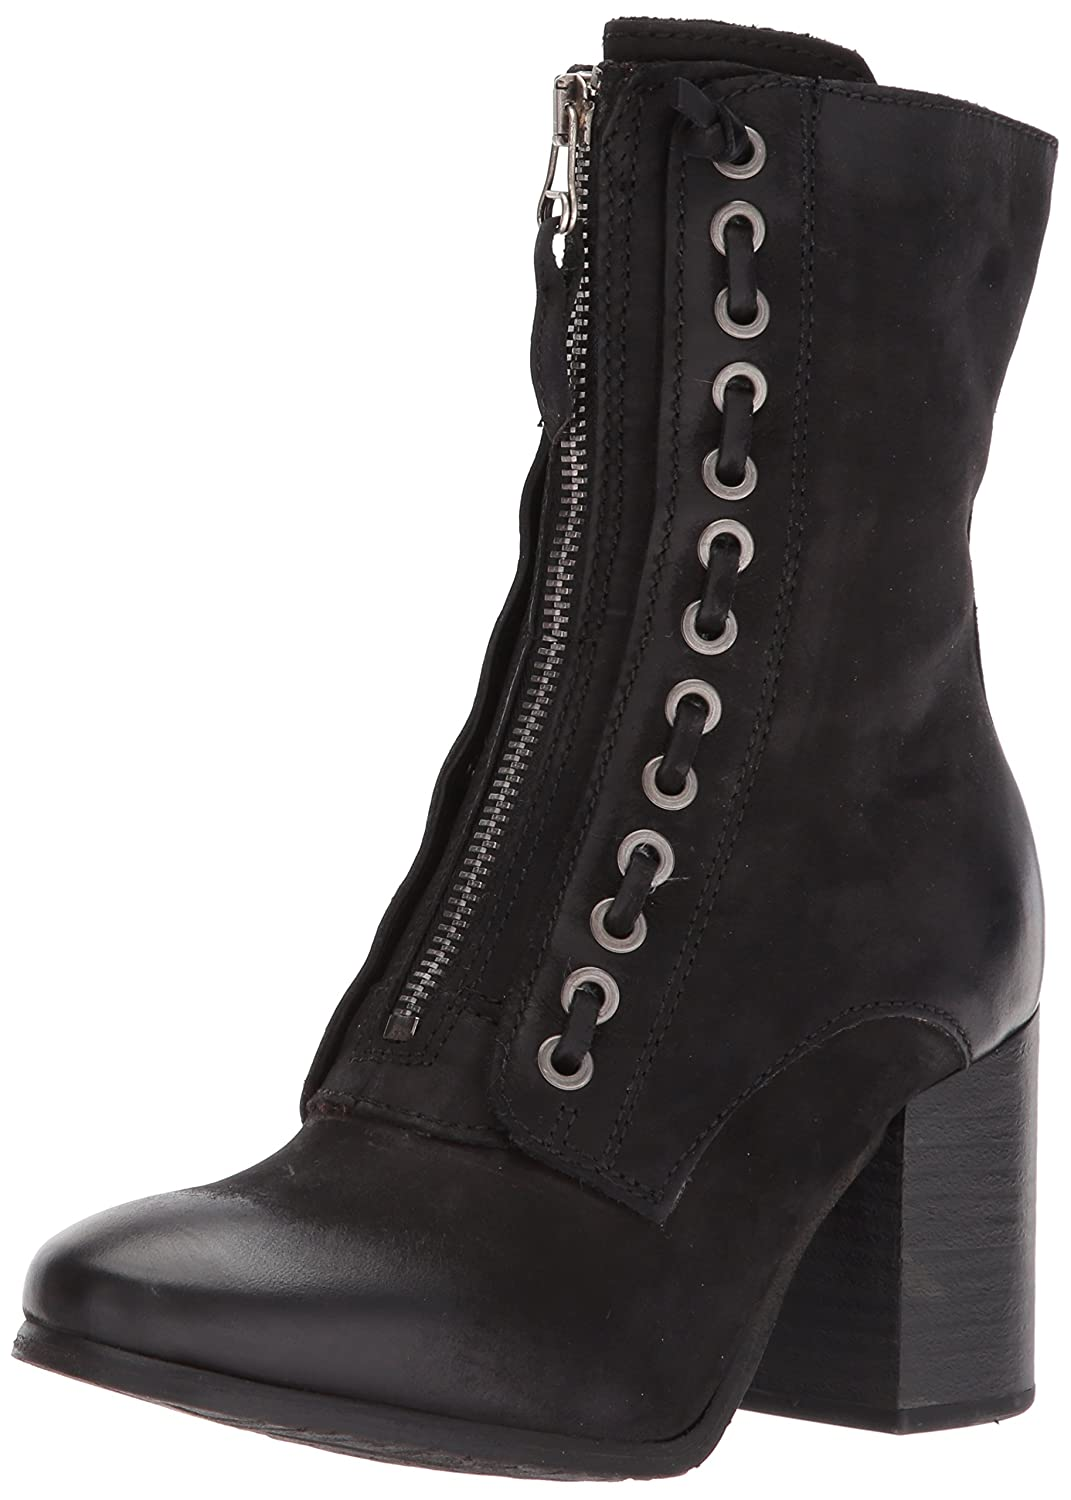 Miz Mooz Women's Nikita Fashion Boot B06XP45GX3 42 M EU (10.5-11 US)|Black